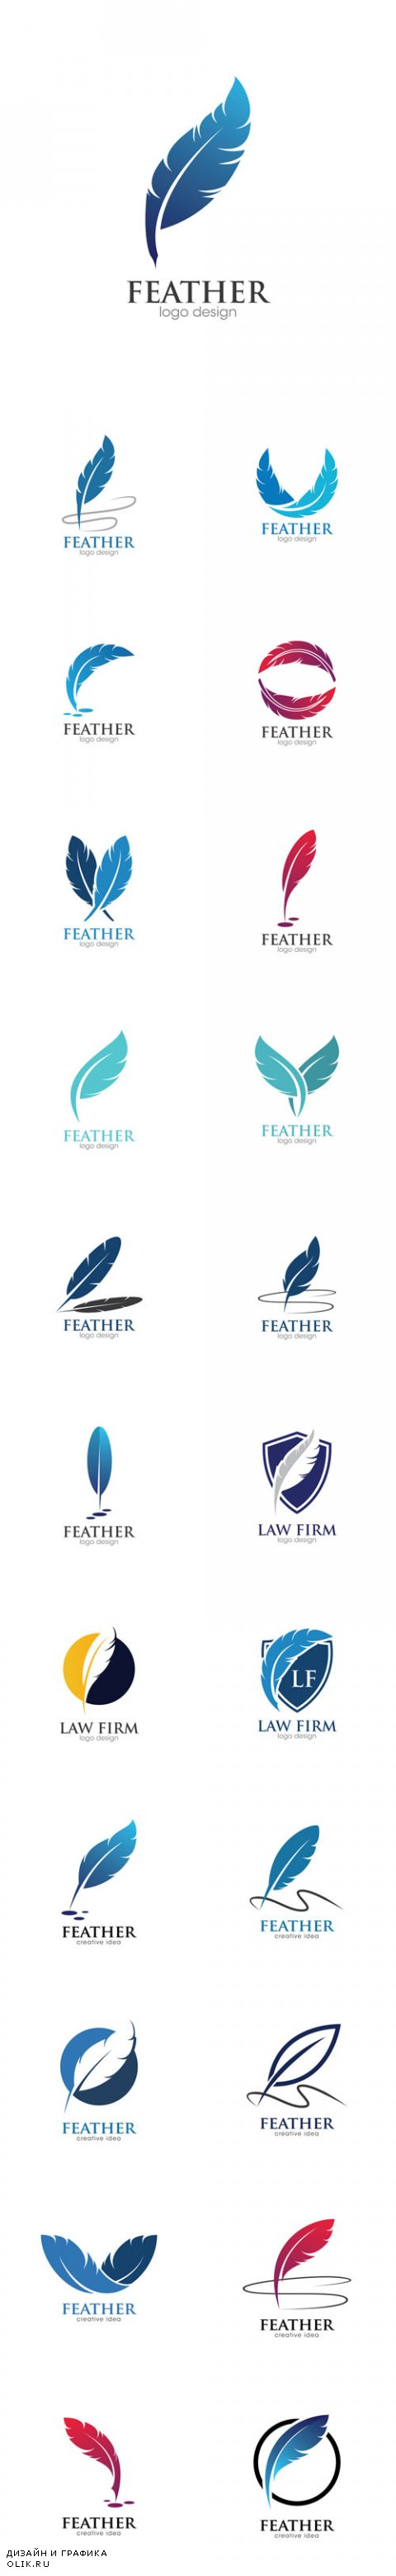 Vector Feather Creative Concept Logo Design Template